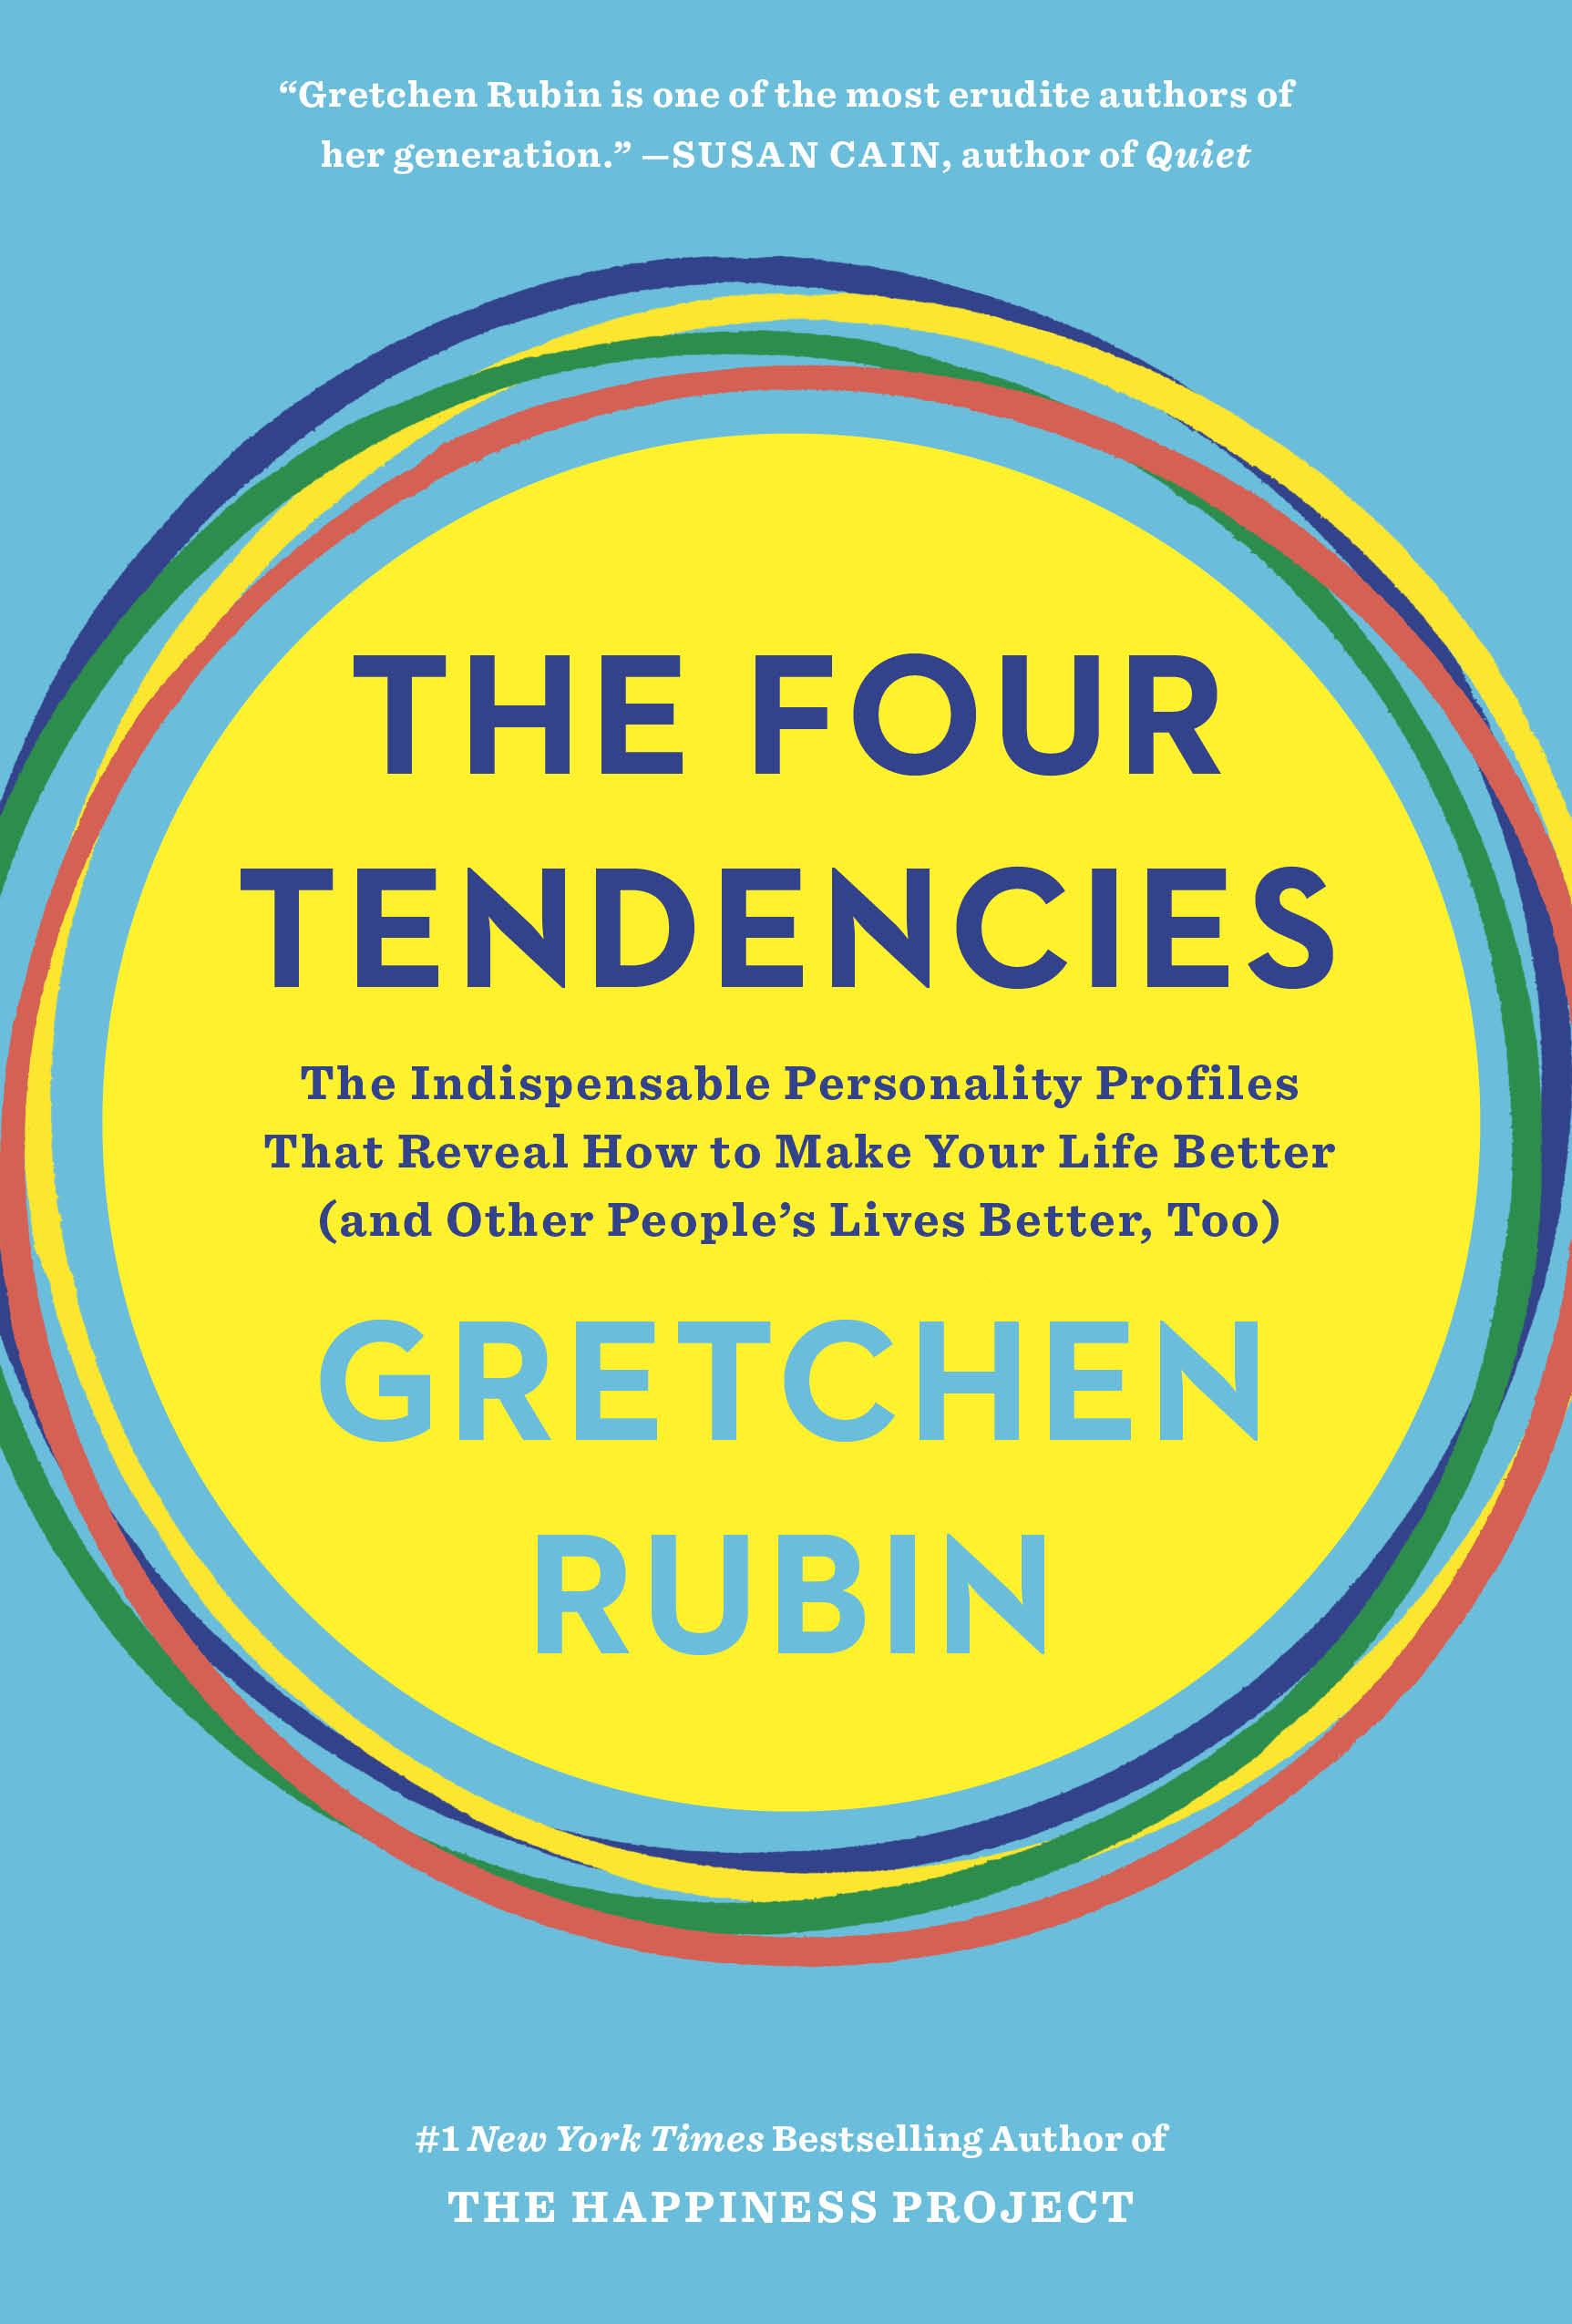 Gretchen Rubin presents THE FOUR TENDENCIES